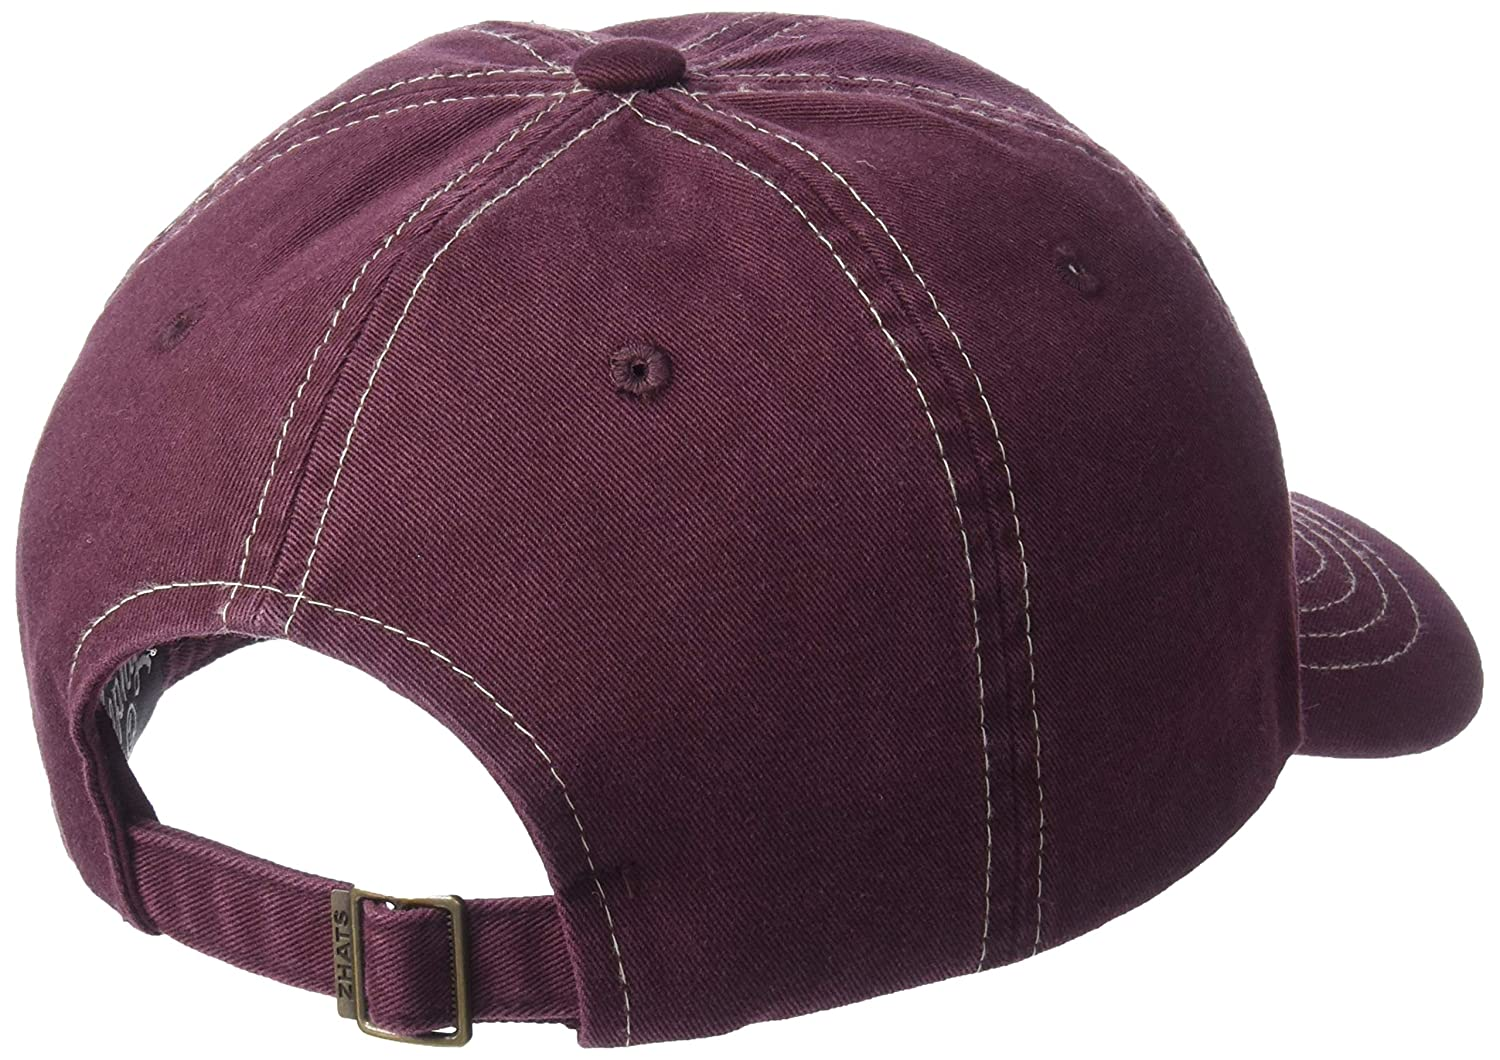 NCAA Zephyr Virginia Tech Hokies Mens Solo Washed Cotton Relaxed Hat Primary Team Color Adjustable